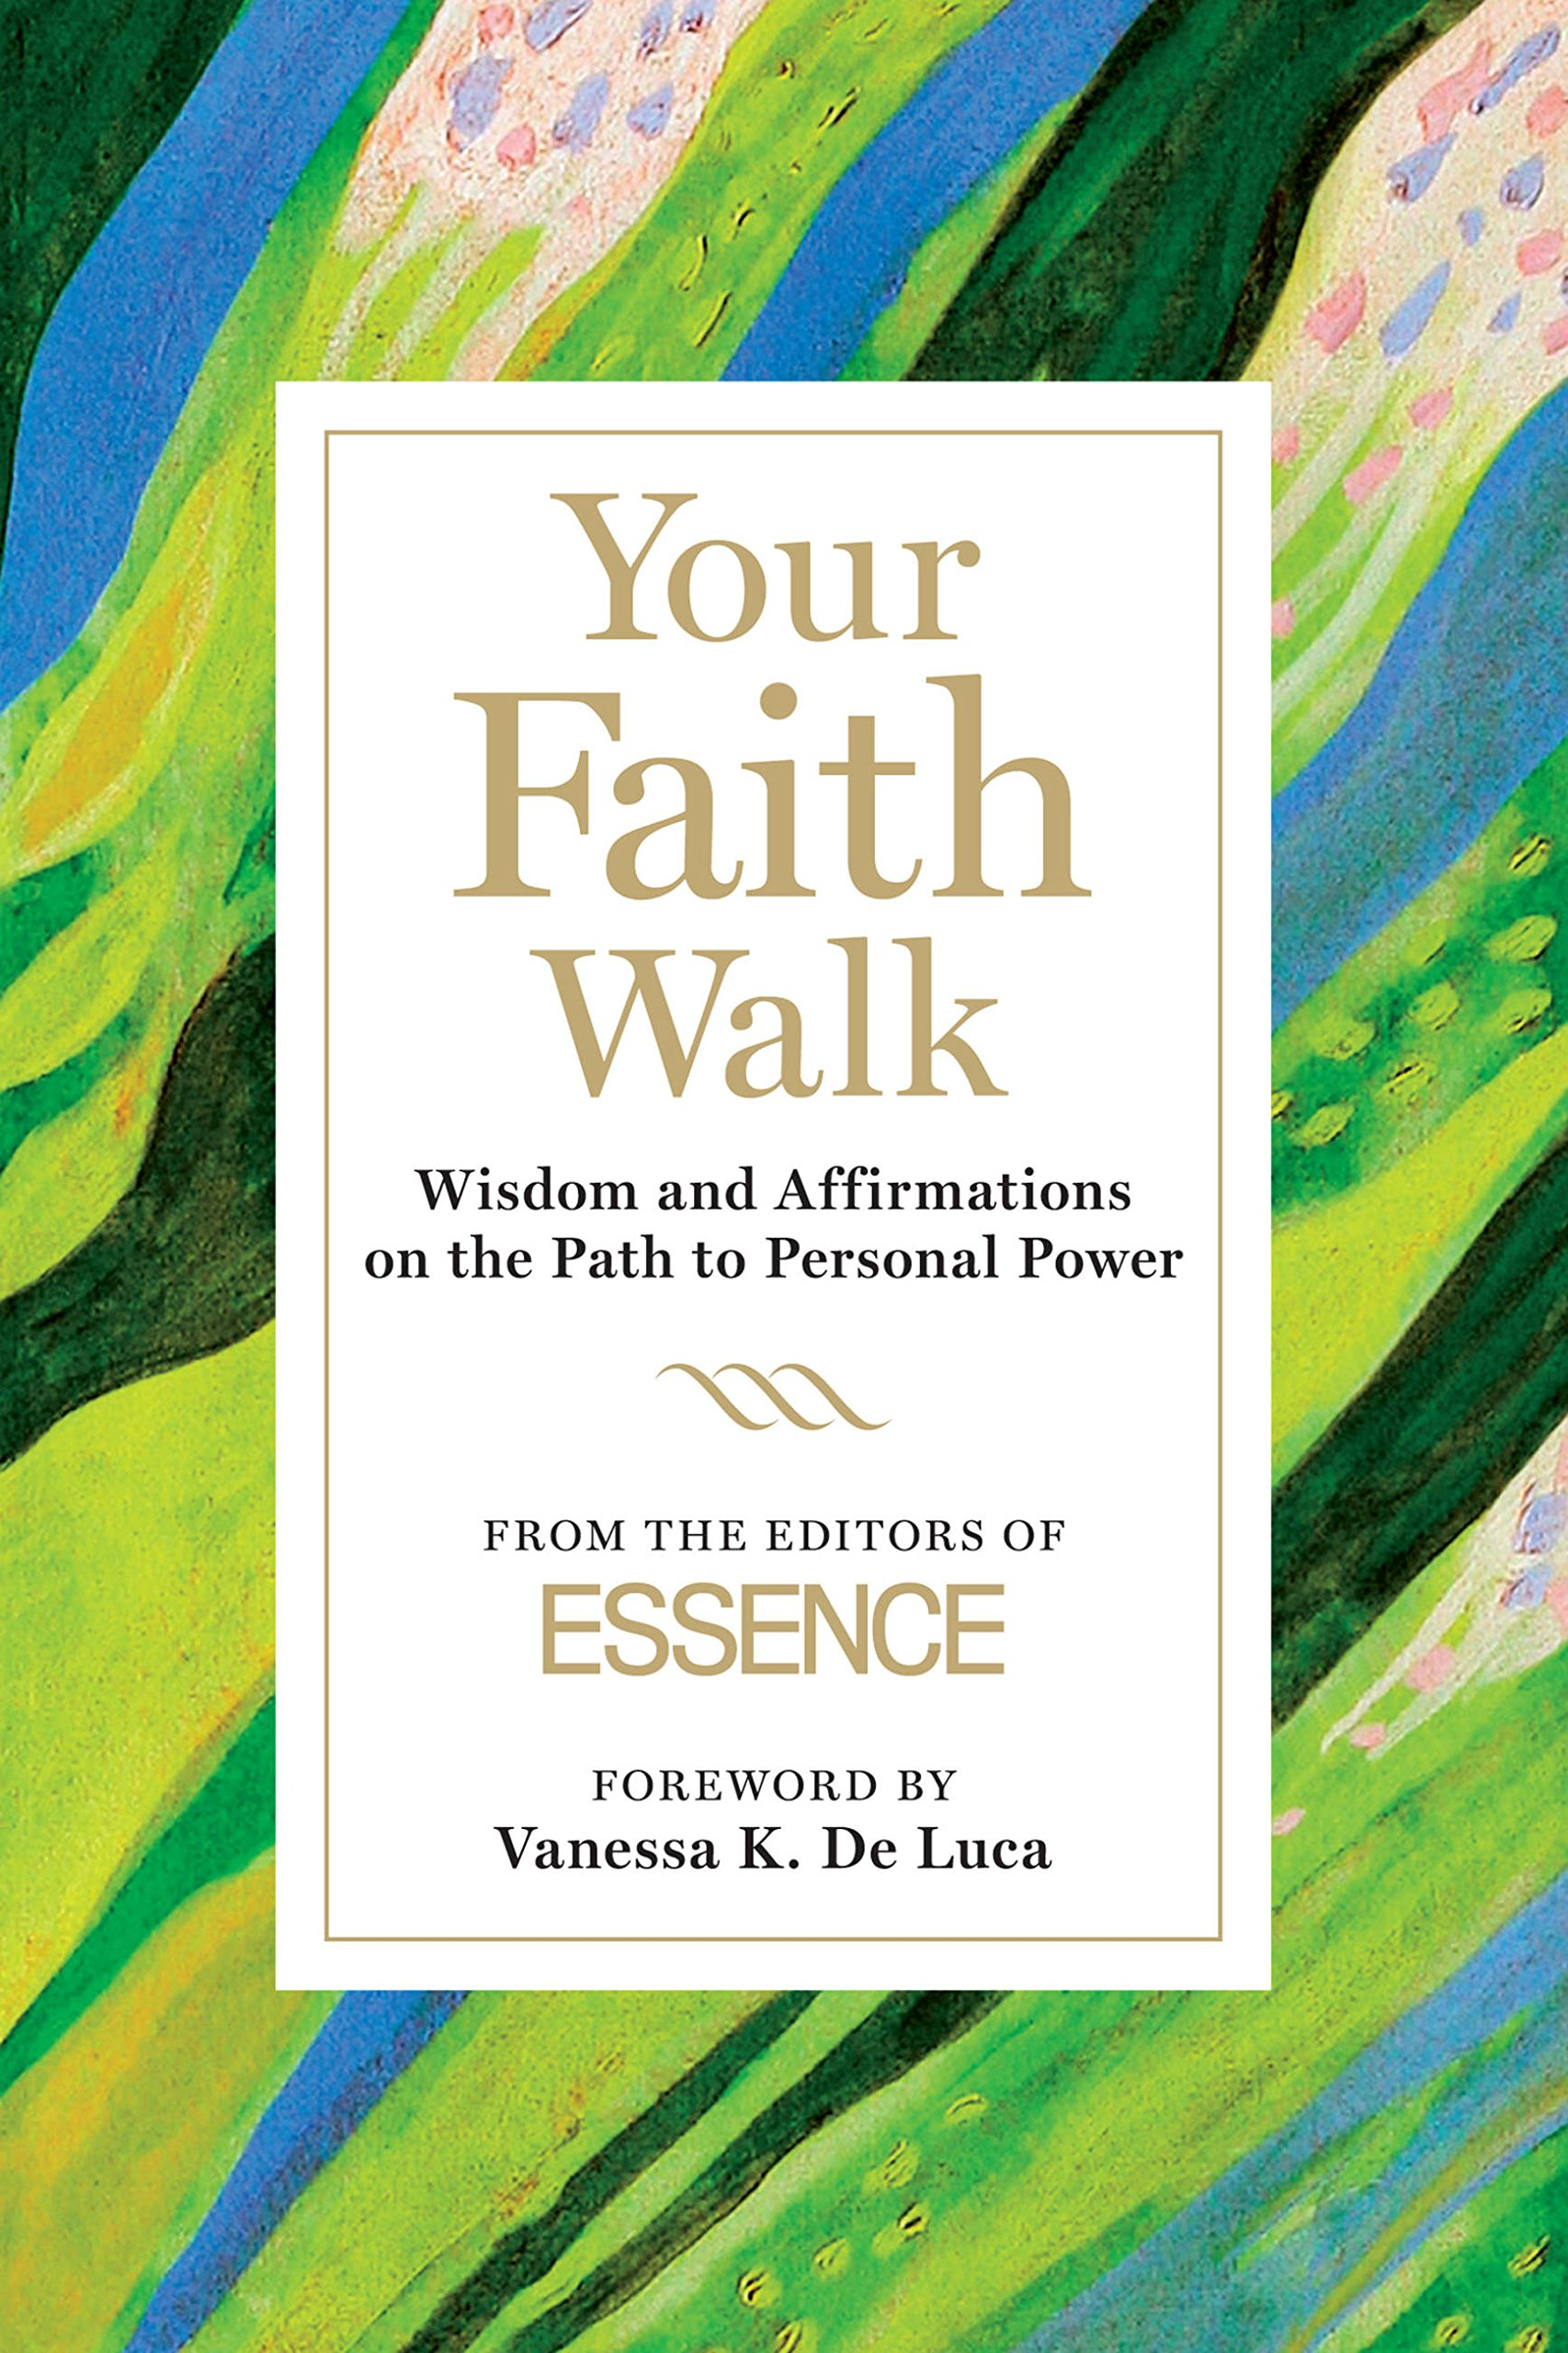 Your Faith Walk: Wisdom and Affirmations on the Path to Personal Power pdf